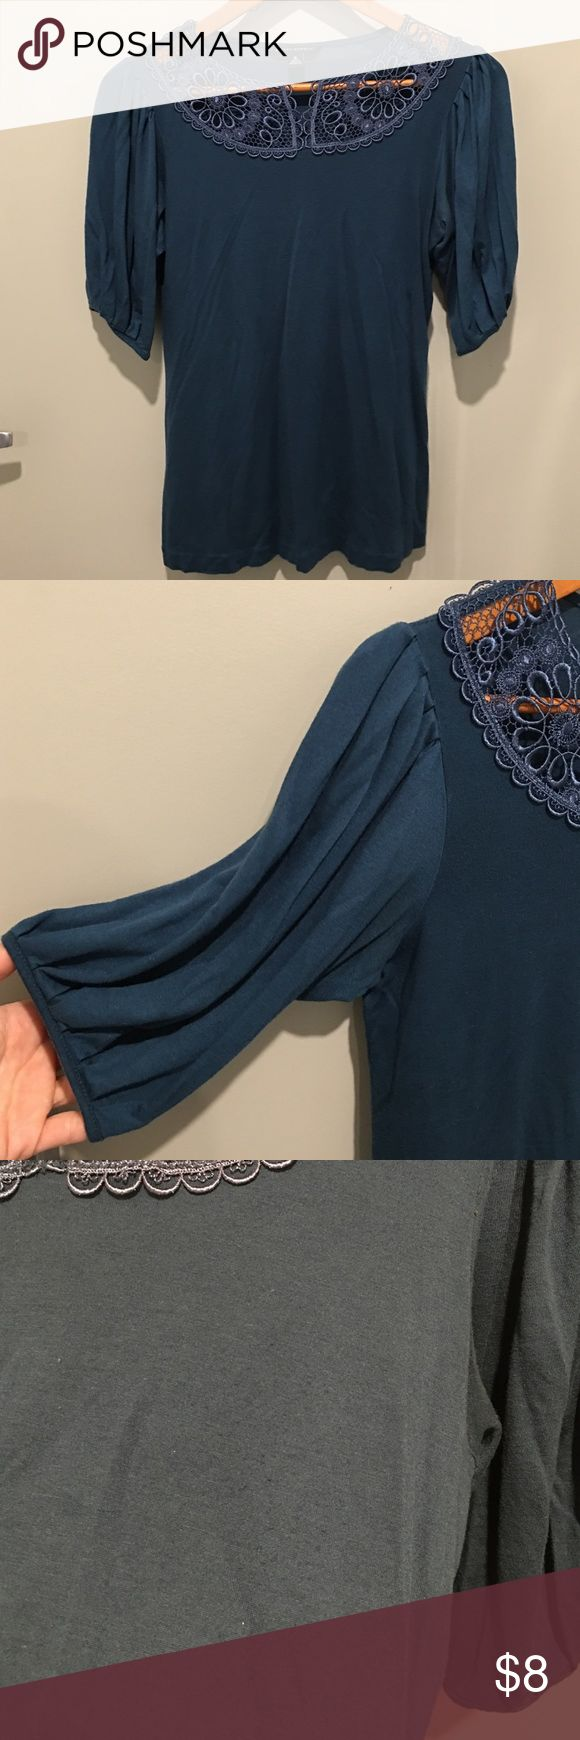 Real blue blouse with see through lace overlay Dark teal color. Soft material, flattering fit. Used condition - some pilling and arm pit deodorant stains which I just noticed while posting. If interested in buying Let me know and I will try to get these stains out before you decide to purchase. Banana Republic Tops Blouses